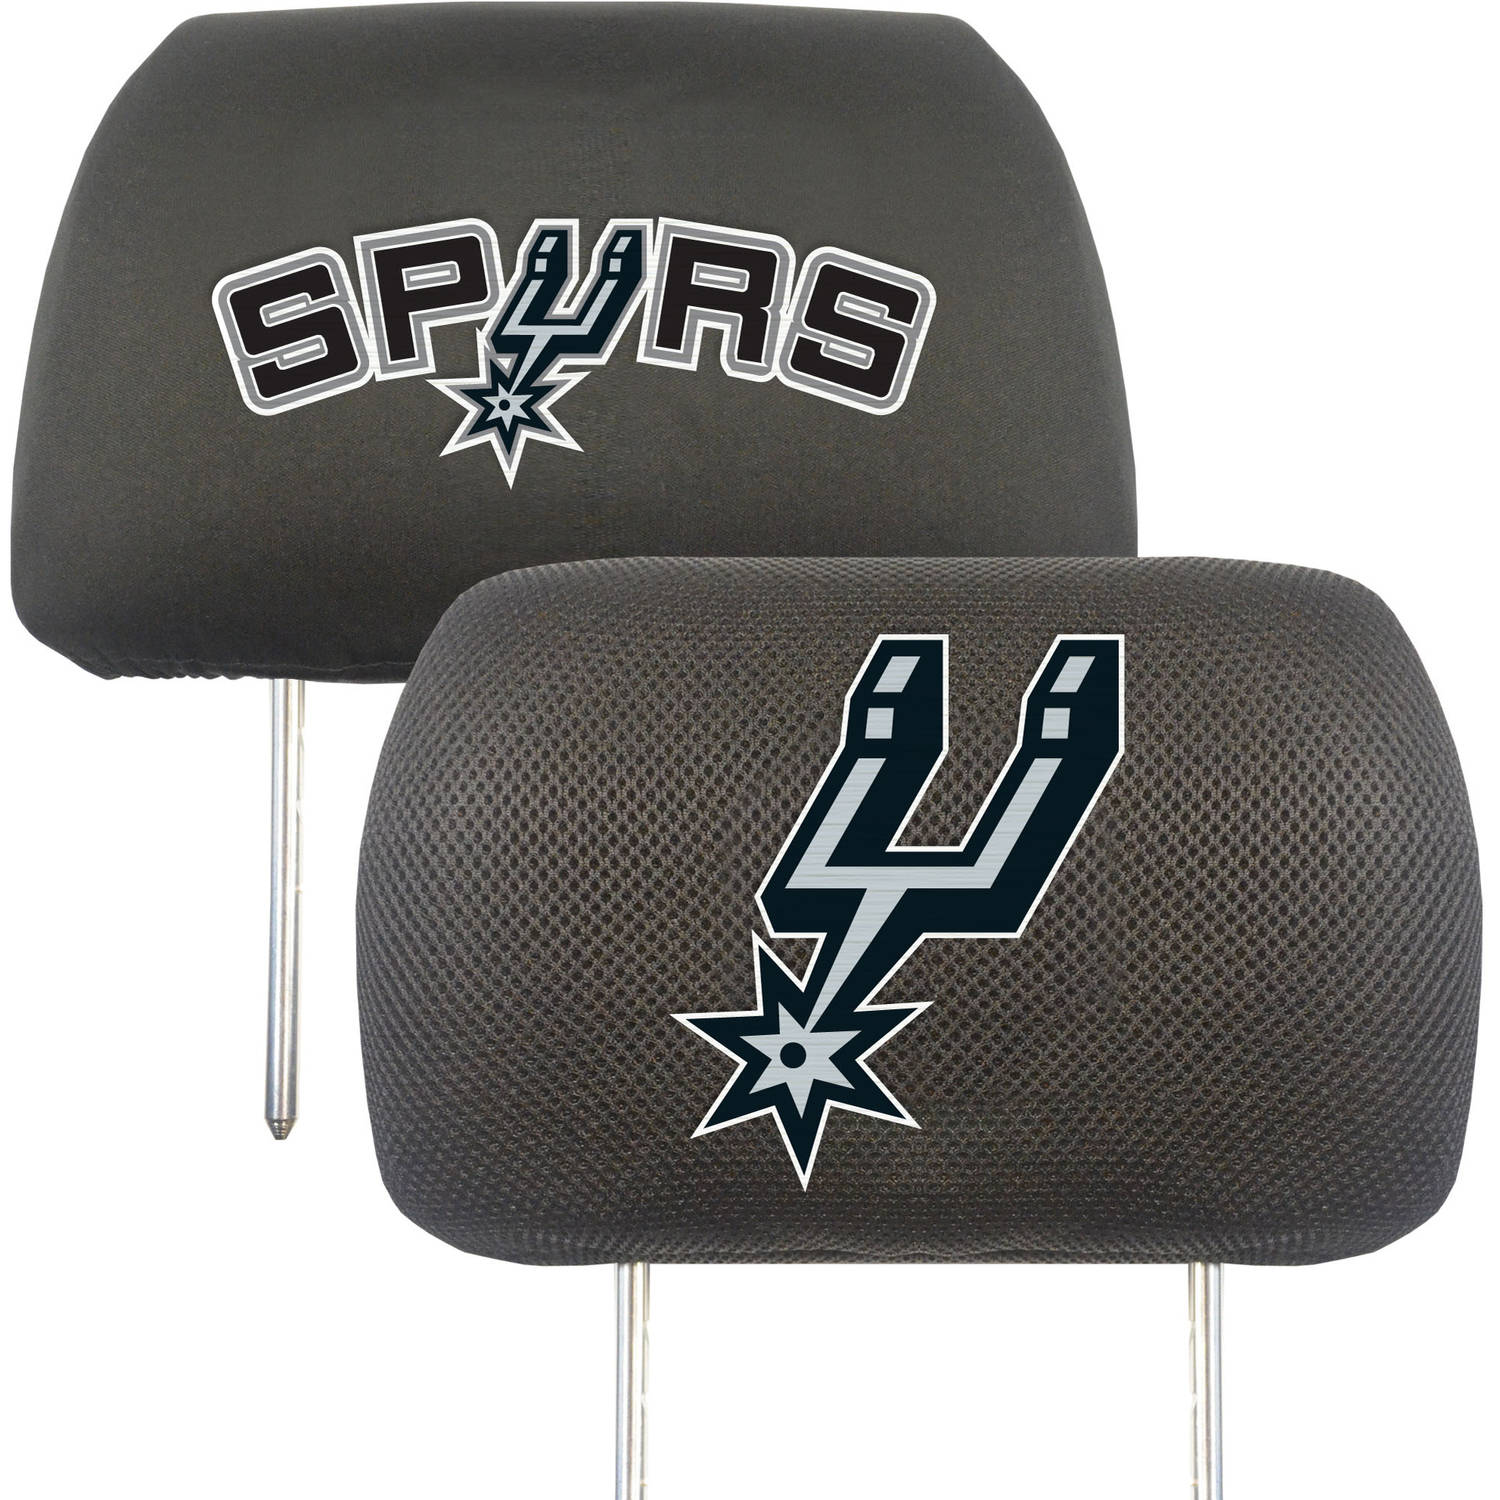 NBA San Antonio Spurs Headrest Covers